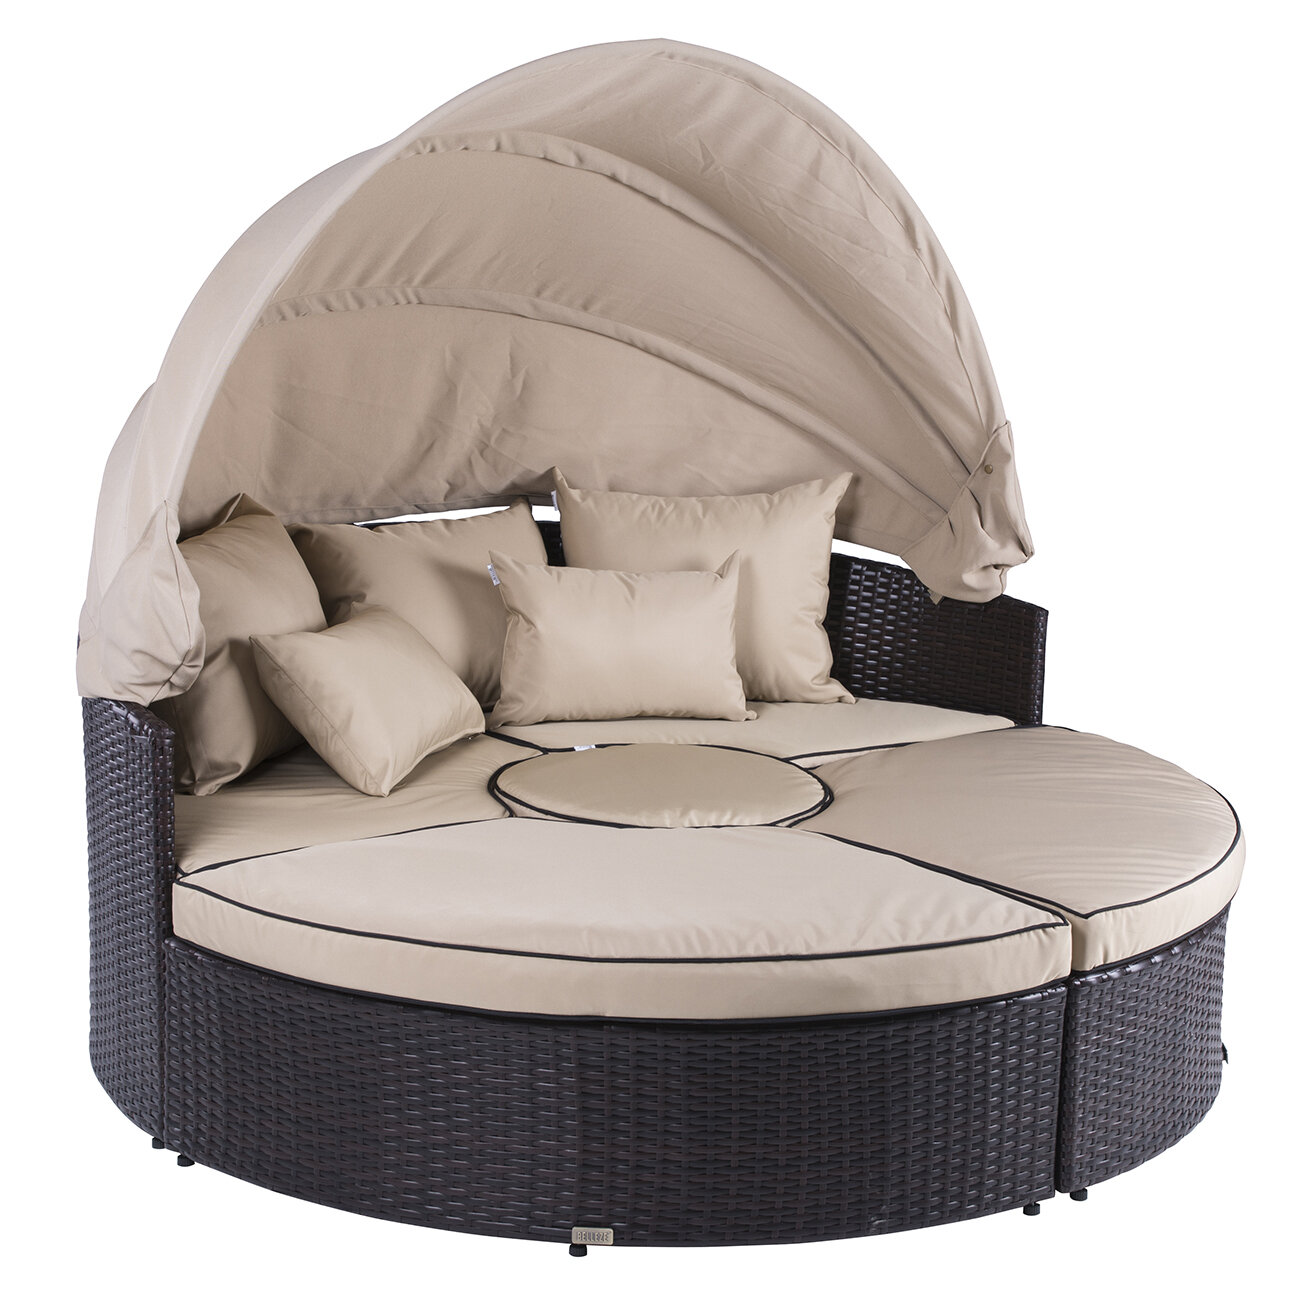 5 piece outdoor daybed set with cushions reviews allmodern